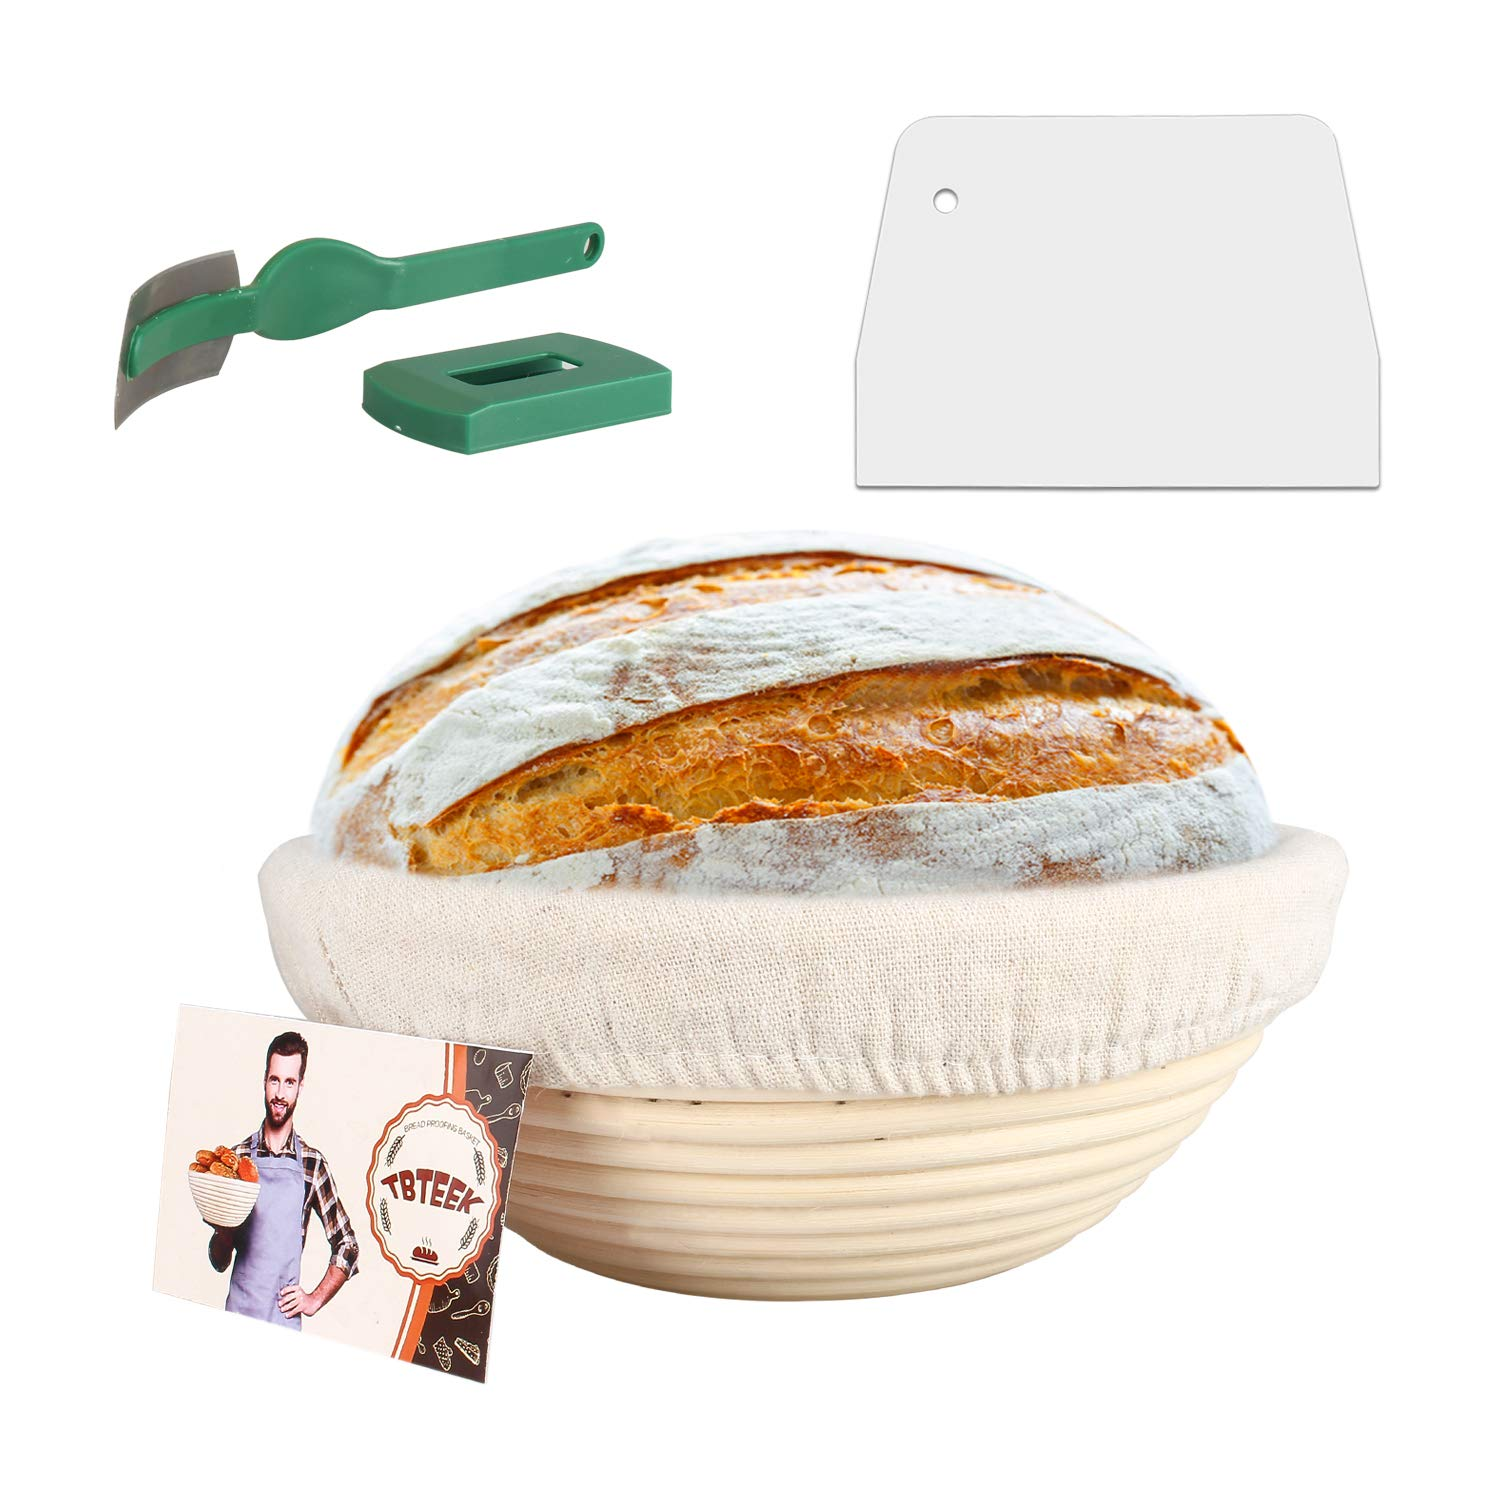 "10"" Banneton Bread Proofing Basket Set-Brotform Rattan Basket with(Cloth Liner,Dough Scraper,Bread Lame,Instruction) for Rising Round Crispy Crust Baked Bread Making Dough Loaf Boules"